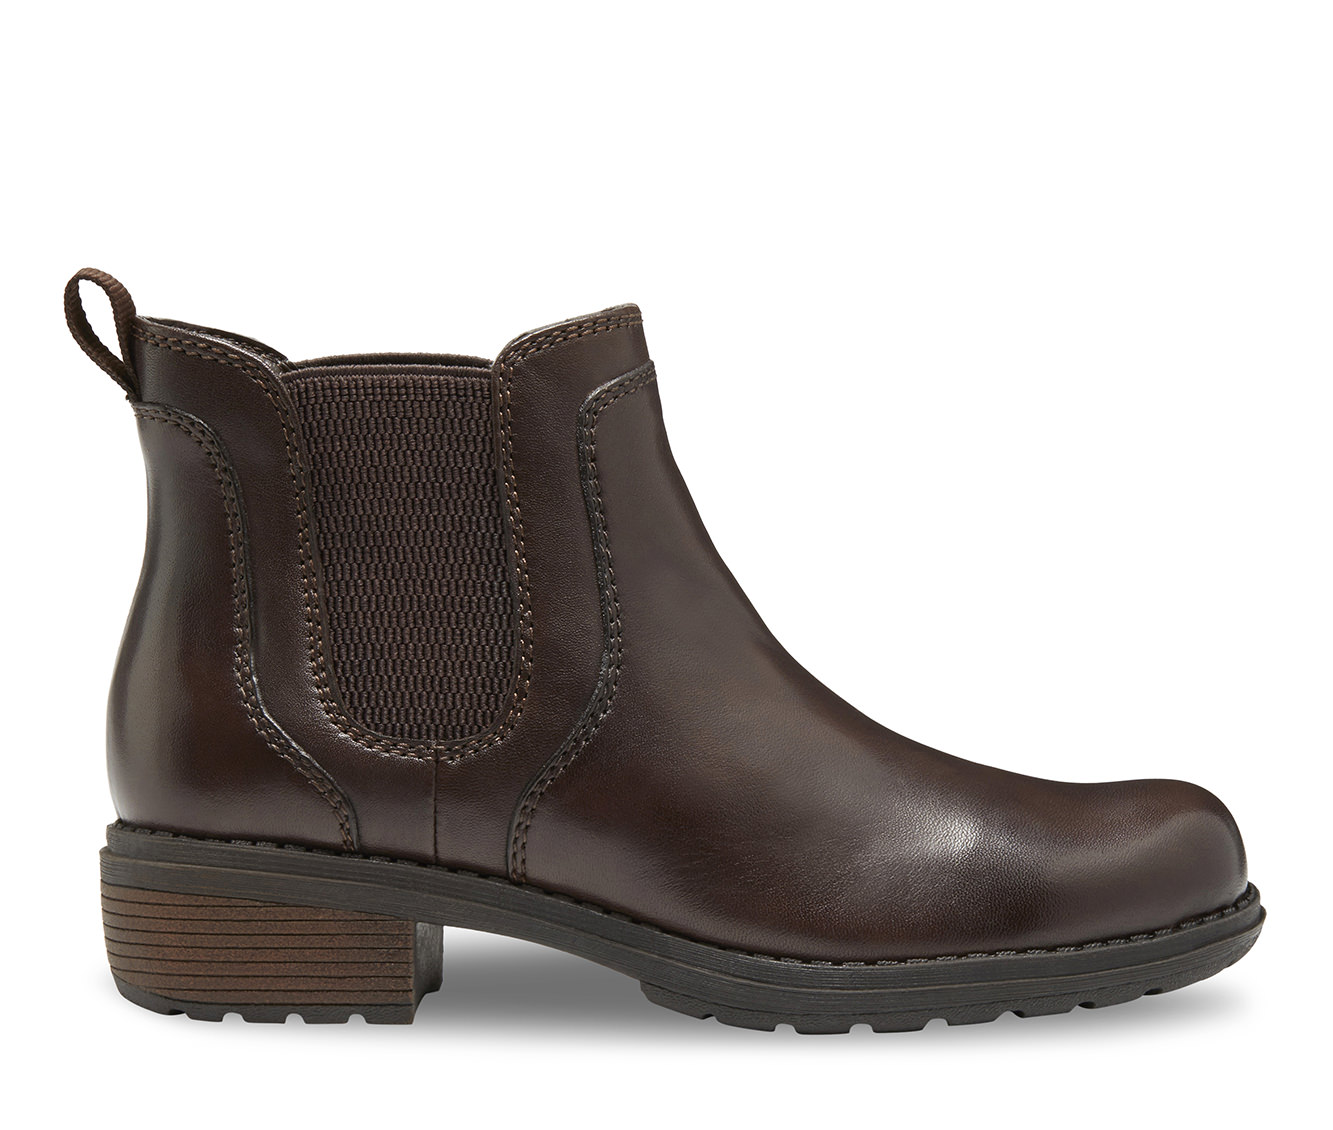 Eastland Double Up Women's Boots (Brown - Leather)